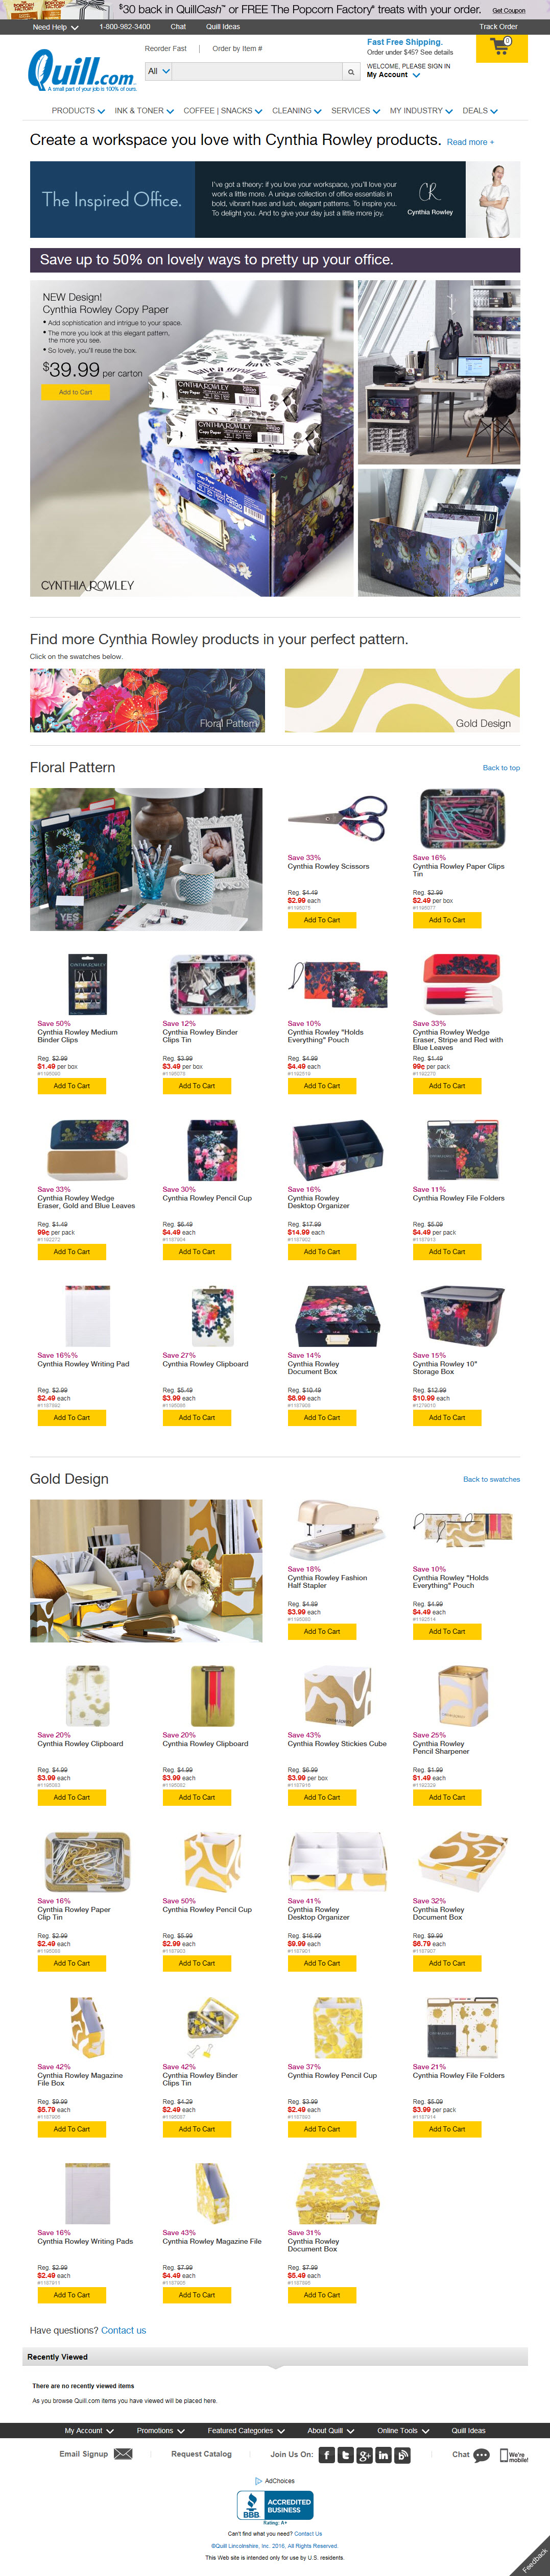 Cynthia Rowley® Product Launch/Campaign—Landing Page